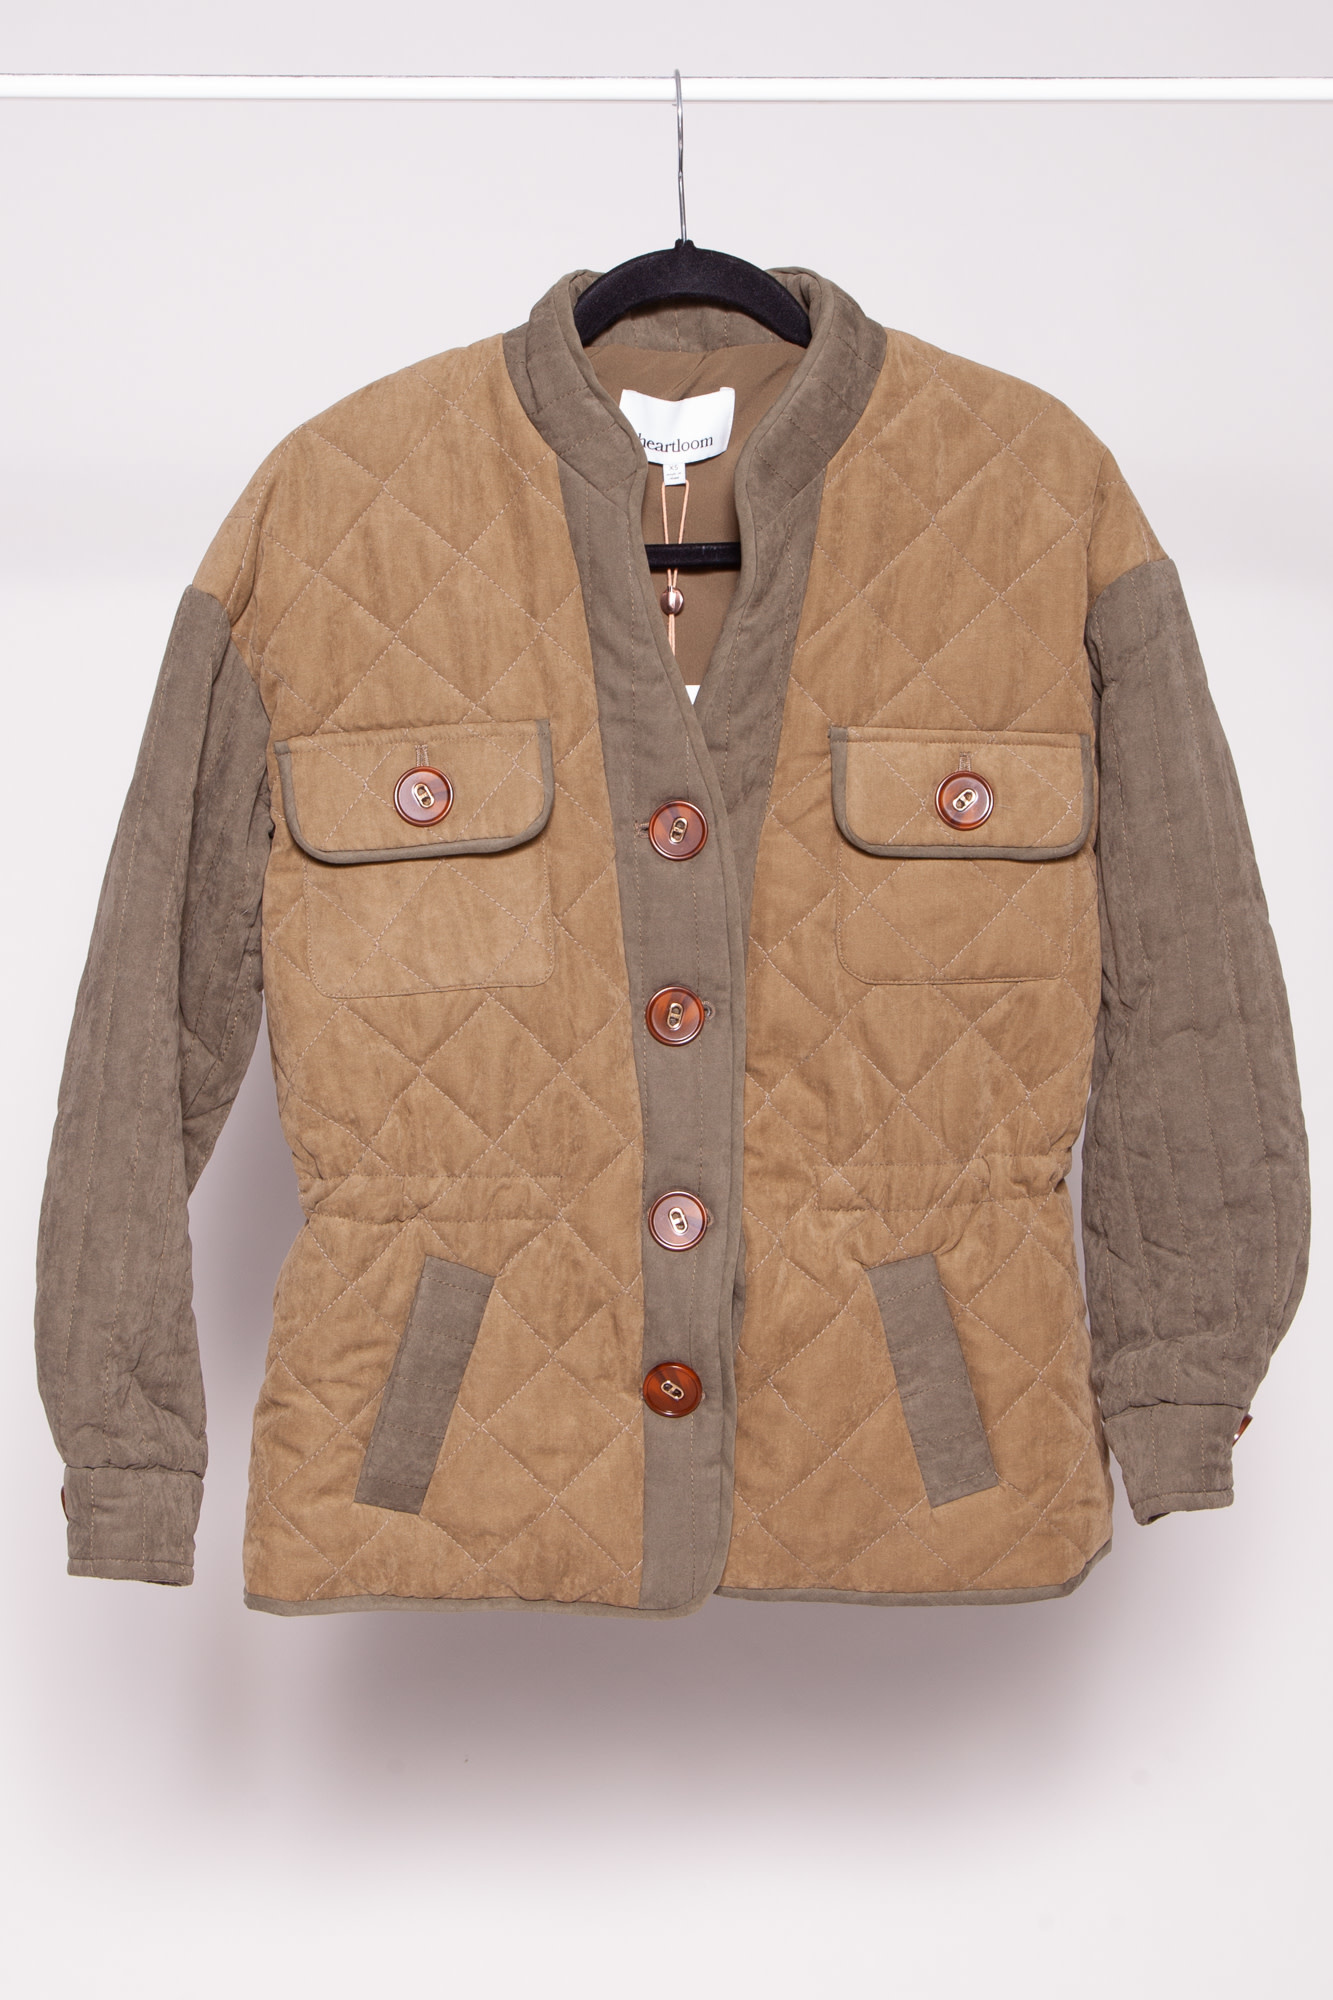 Heartloom KHAKI QUILTED MASON COAT - NEW WITH TAGS